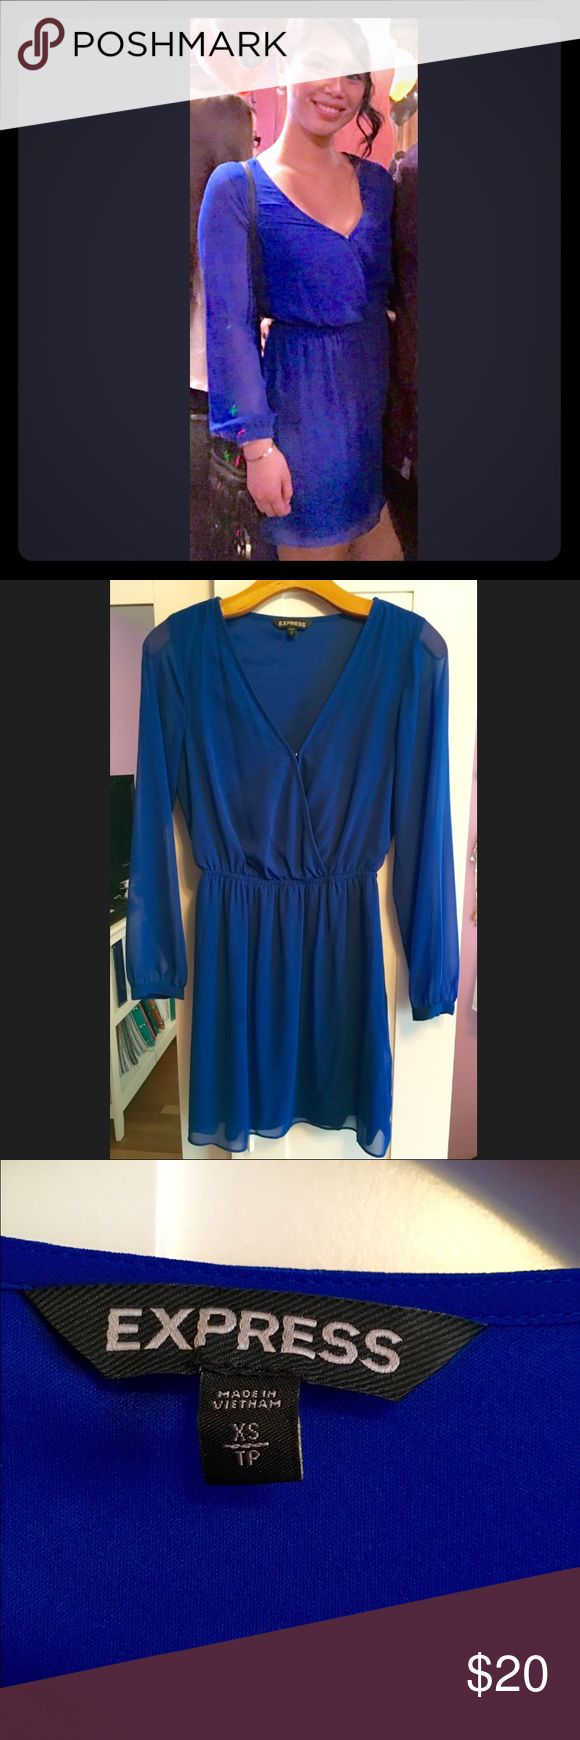 Blue long sleeve flowy dress Blue long sleeve flowy dress from Express. Classy and chic with a bold blue color. Dress has semi sheer sleeves, fitted waist, and flowy skirt. There is a clasp in the front if you want a more opened look. Express Dresses Long Sleeve